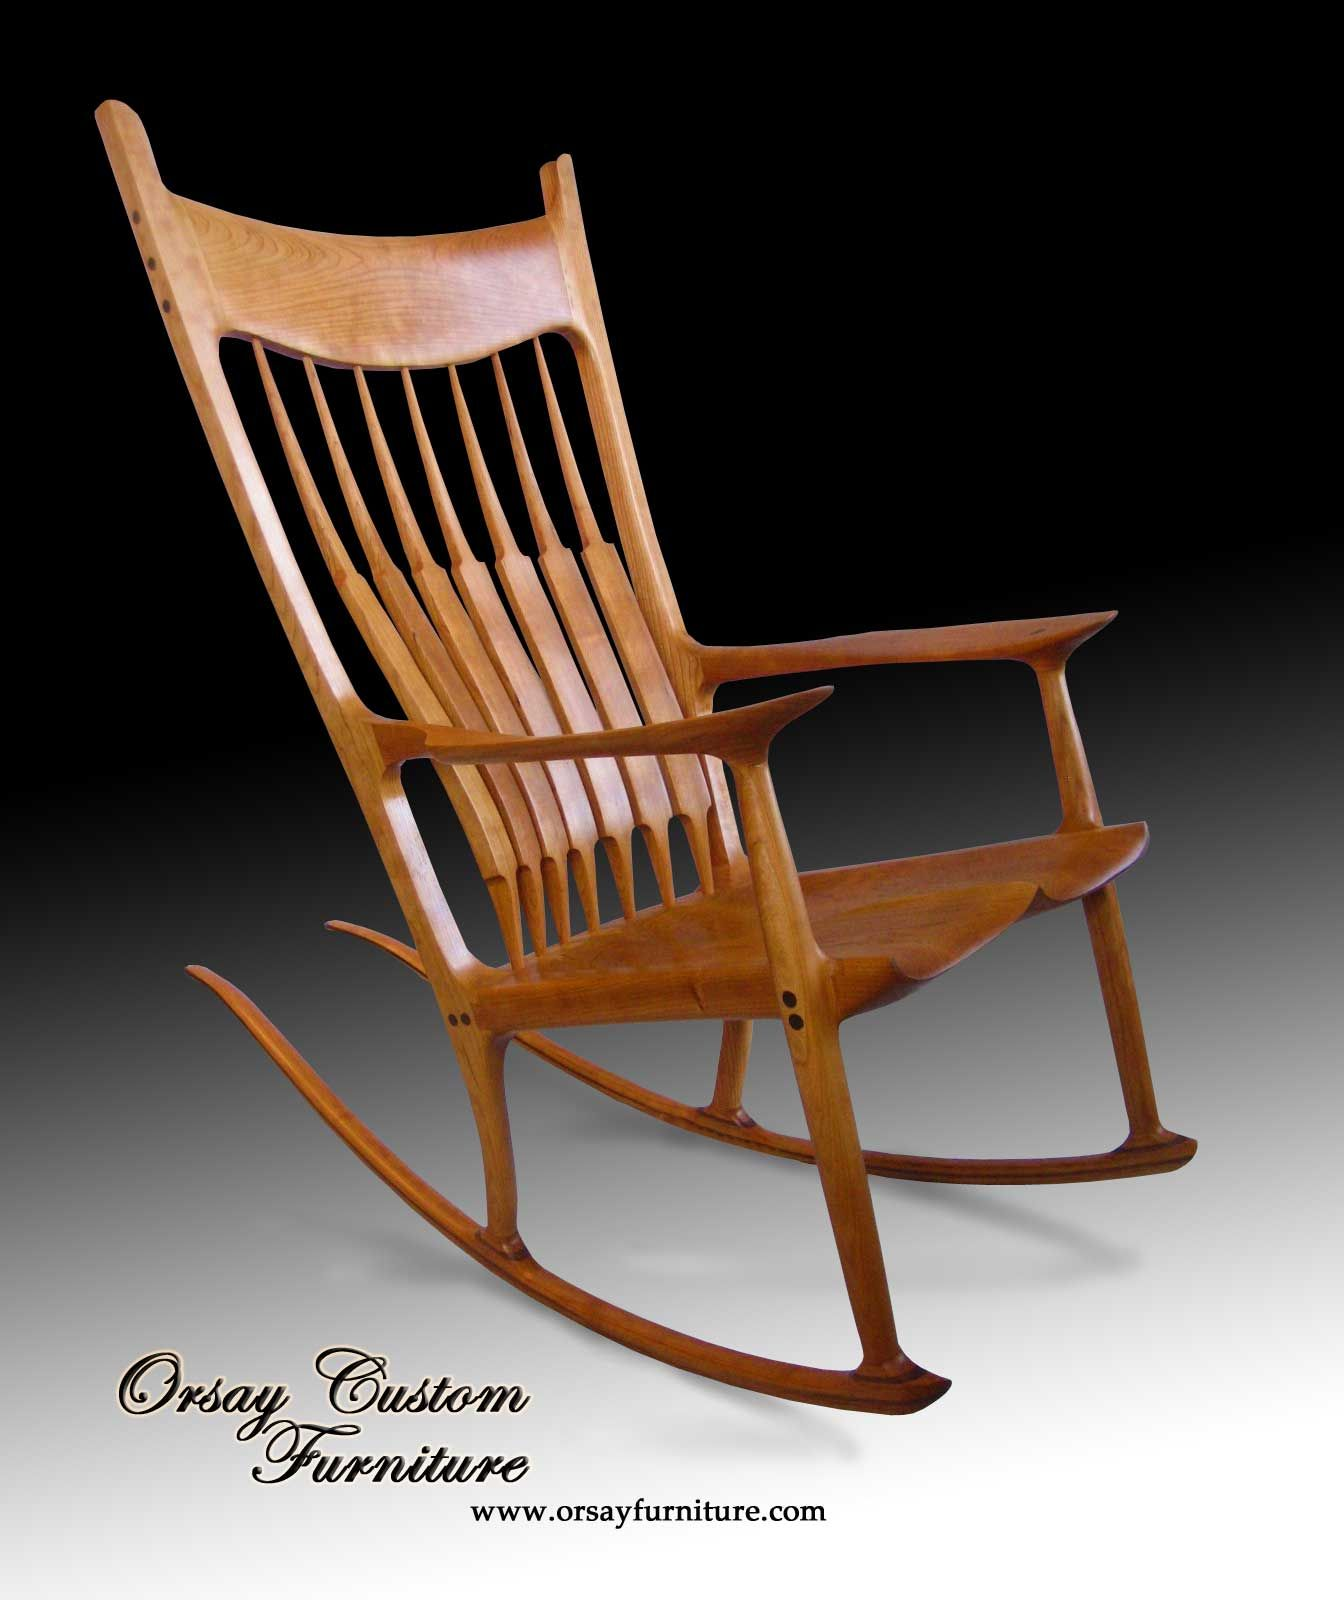 Handmade Rocking Chairs Top 10 Ergonomic Desk Chair Sculptured From Black Cherry With Walnut Dowels Made By Master Craftsman David Orsay